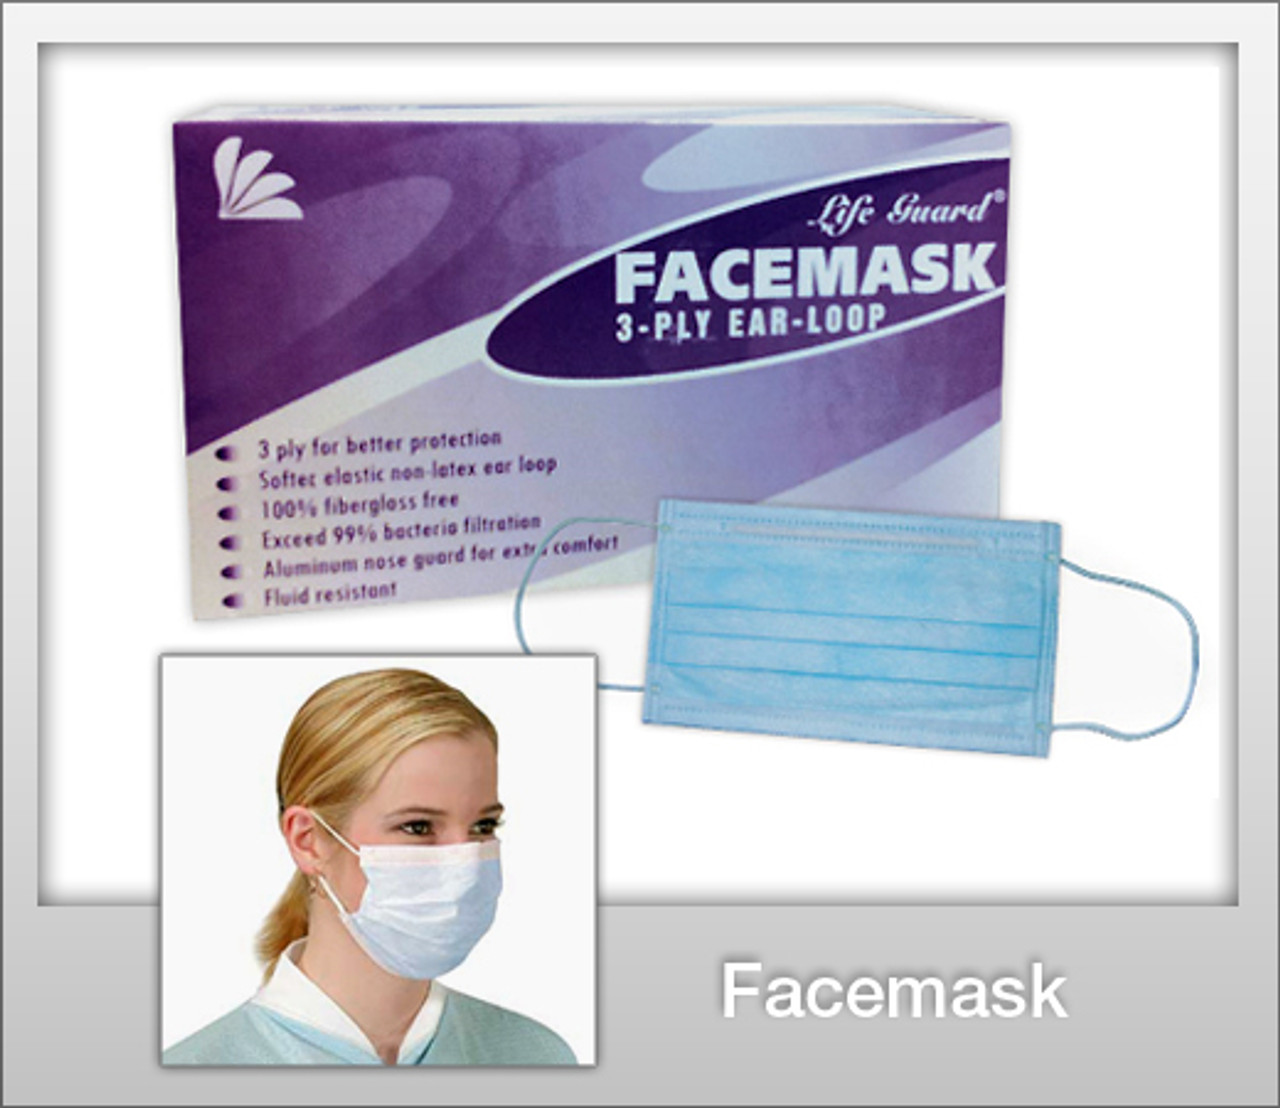 box Placing Before Face Of Life Mask Guard Us Email 50 please